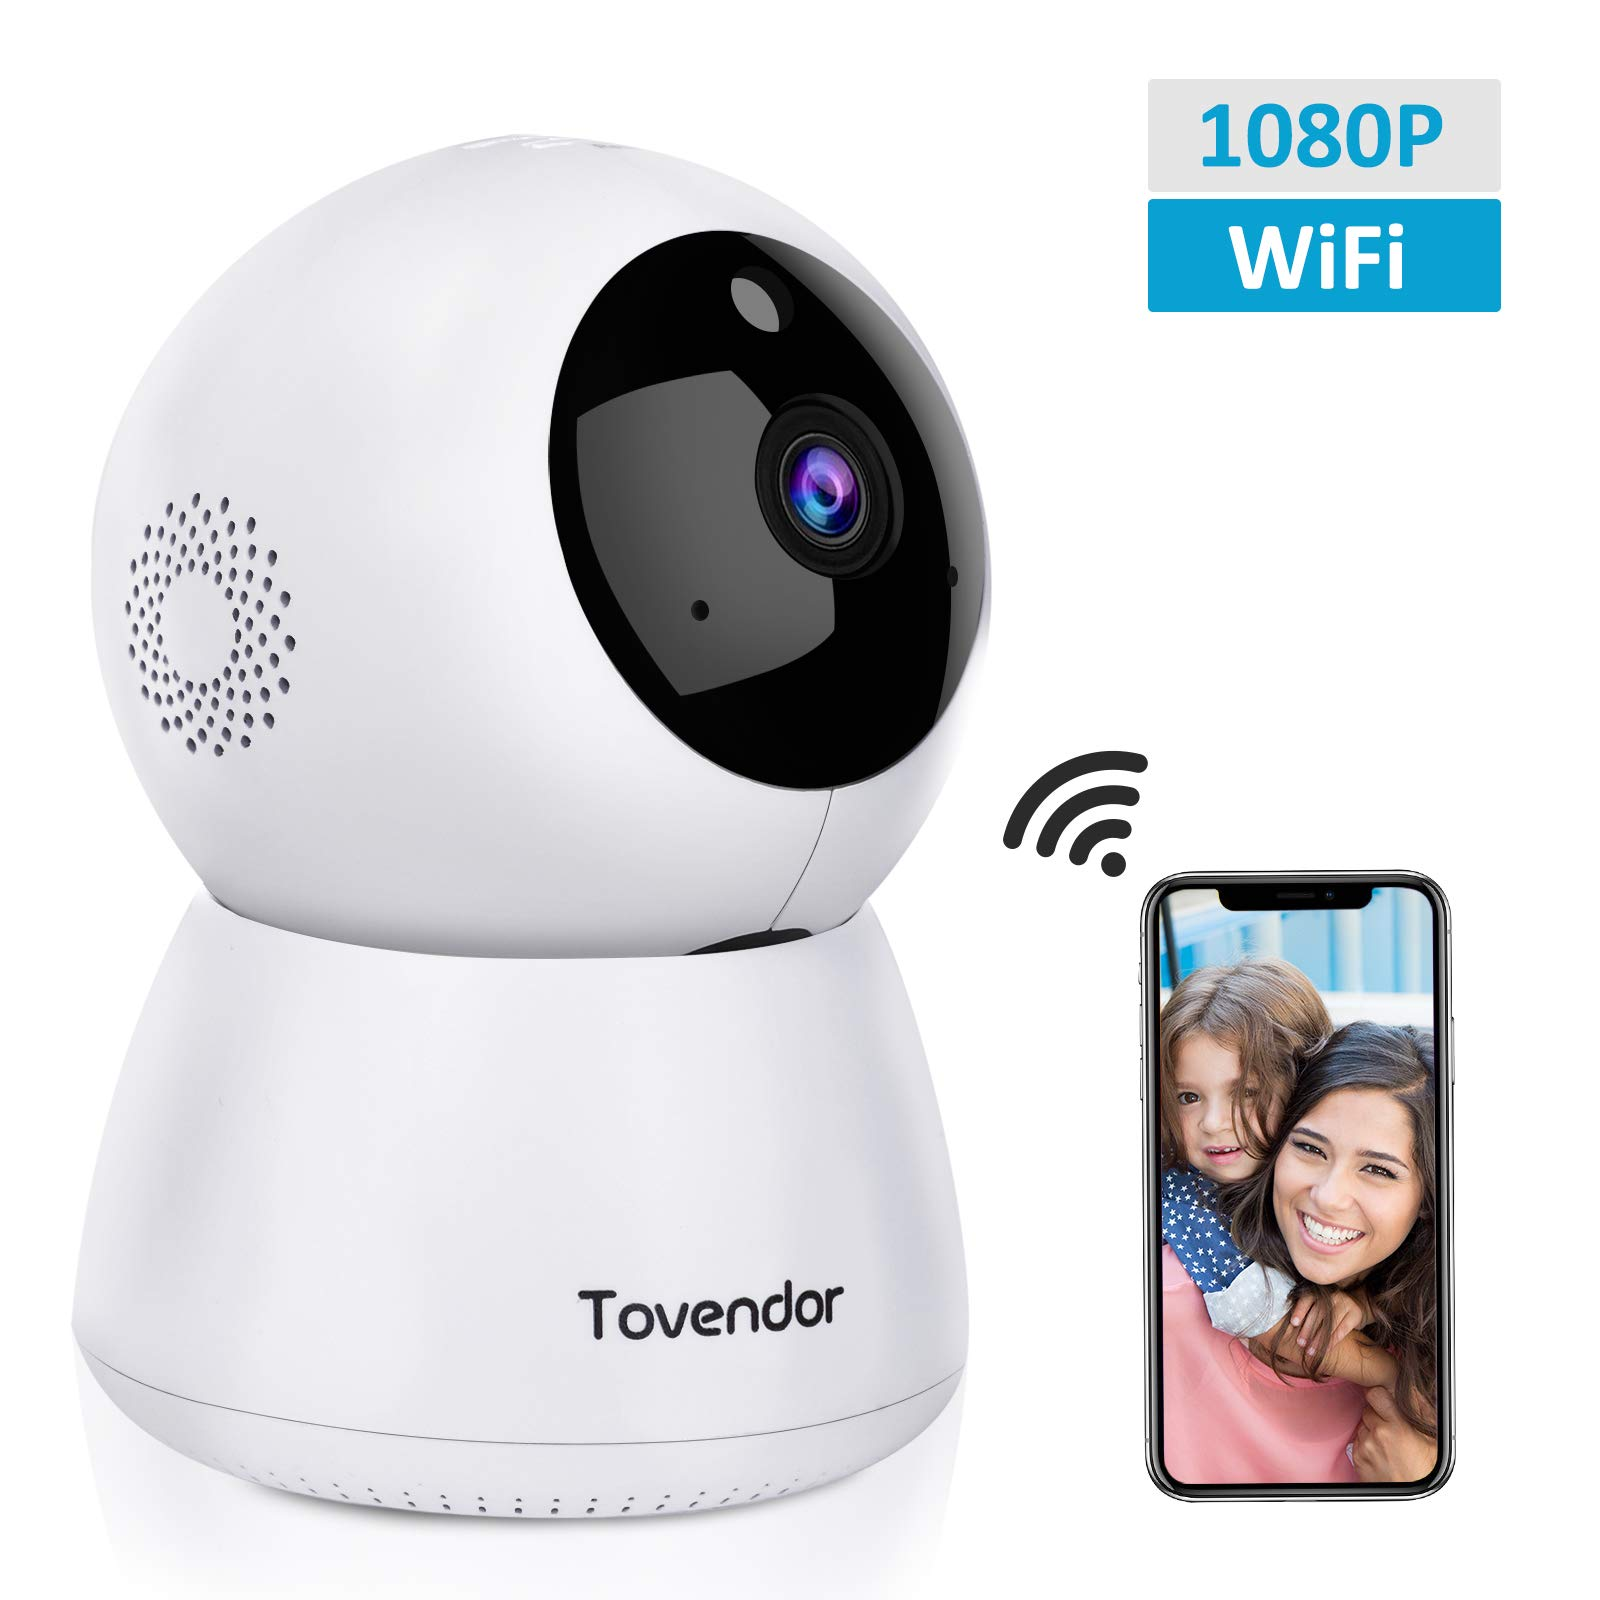 Tovendor IP Camera WiFi 1080P, Pan/Tilt/Zoom Dome Camera, Home Security System with Night Vision, Motion Detection, 2 Way Audio For Surveillance/Elder/Pet/Office/Baby Monitor - Cloud Service